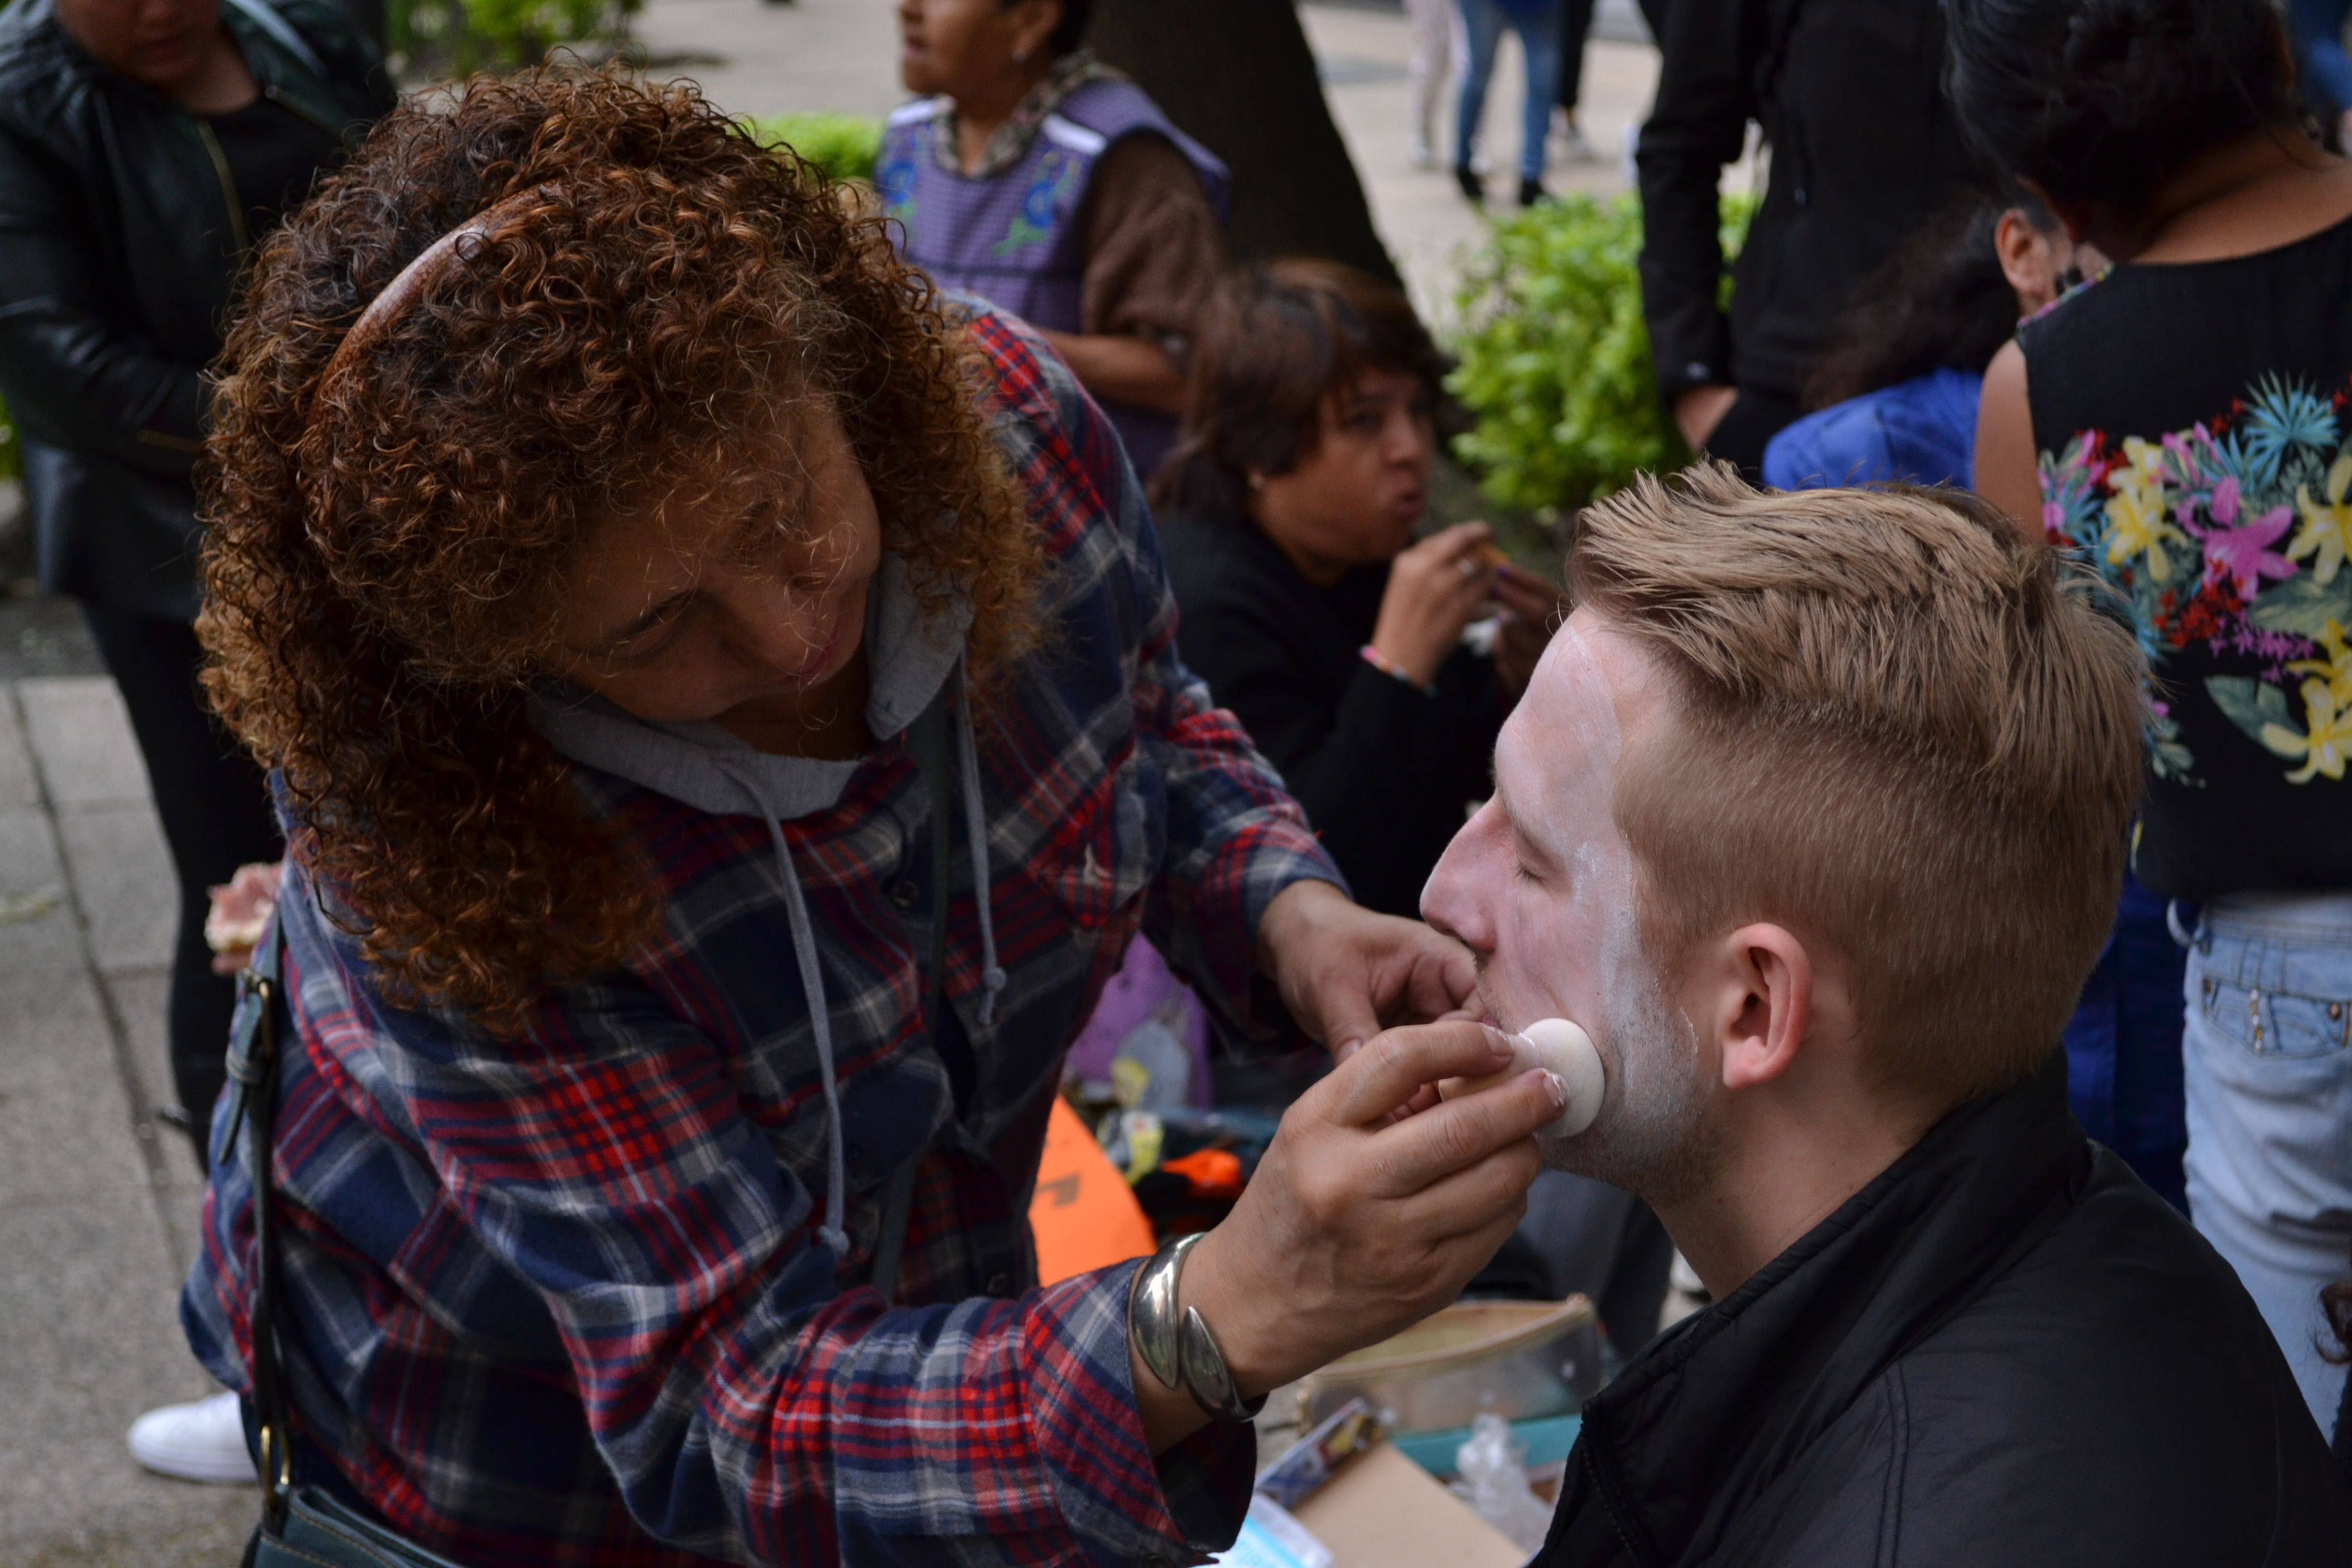 Both locals and foreigners had their faces painted as part of the tradition